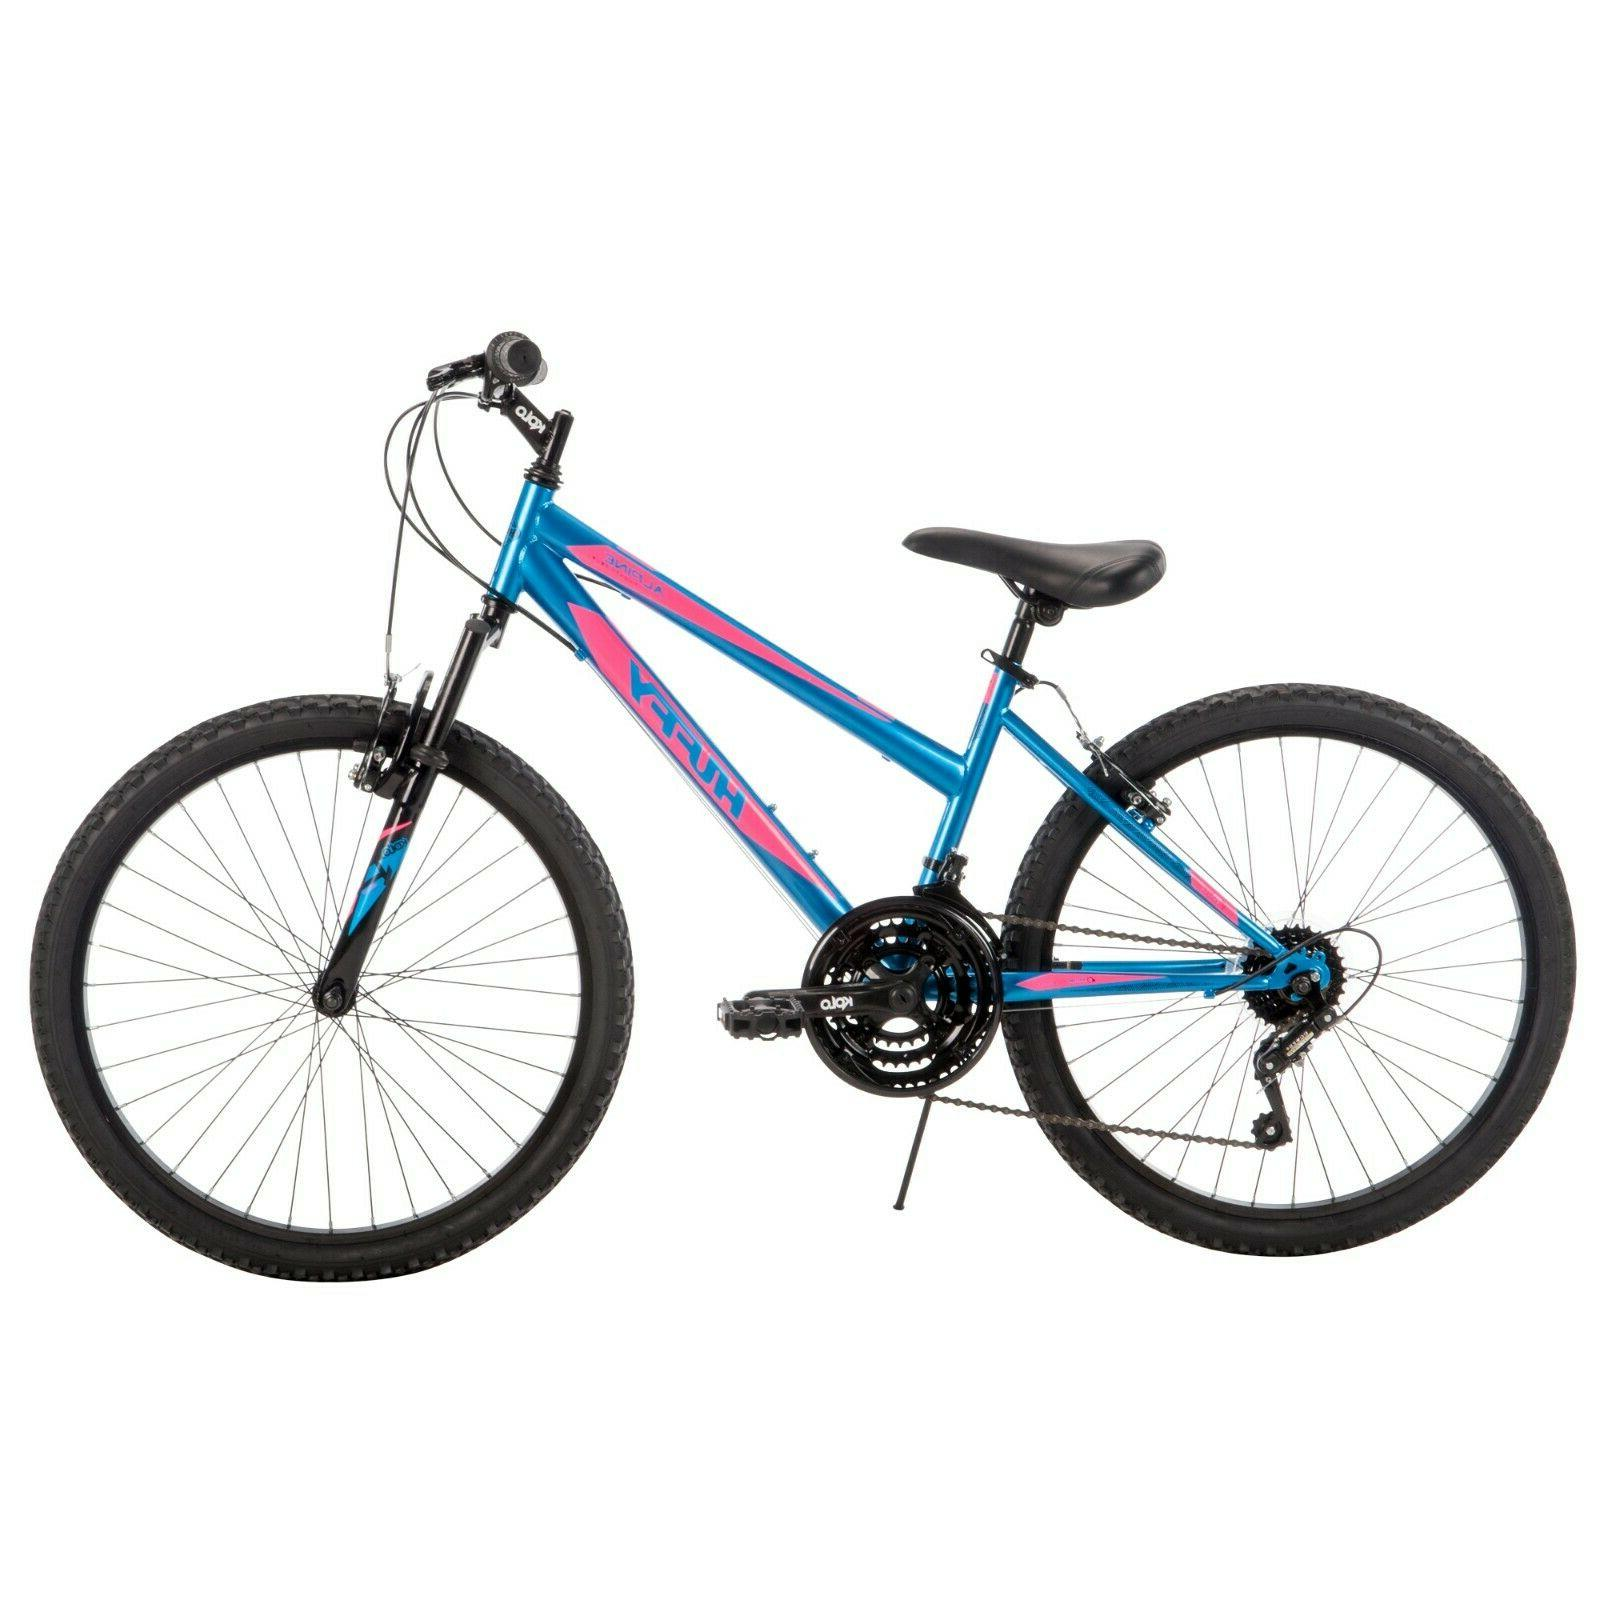 Huffy Mountain Bike 24 inch Speed NEW